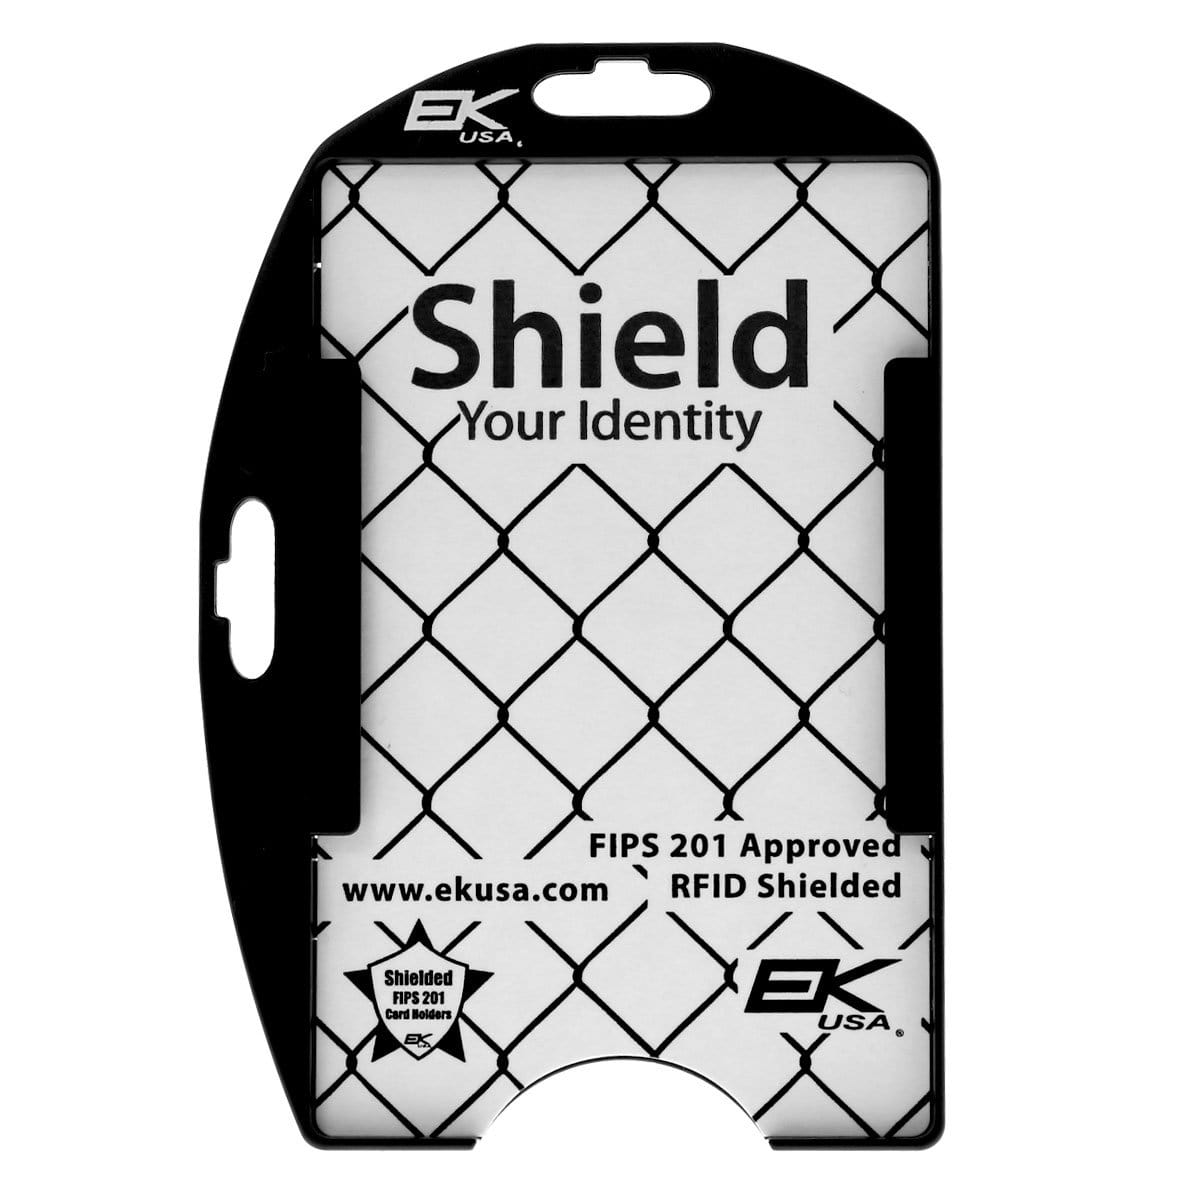 Black EK Patriot Shielded RFID Blocking Two Card ID Badge Holder (10916) by EK USA